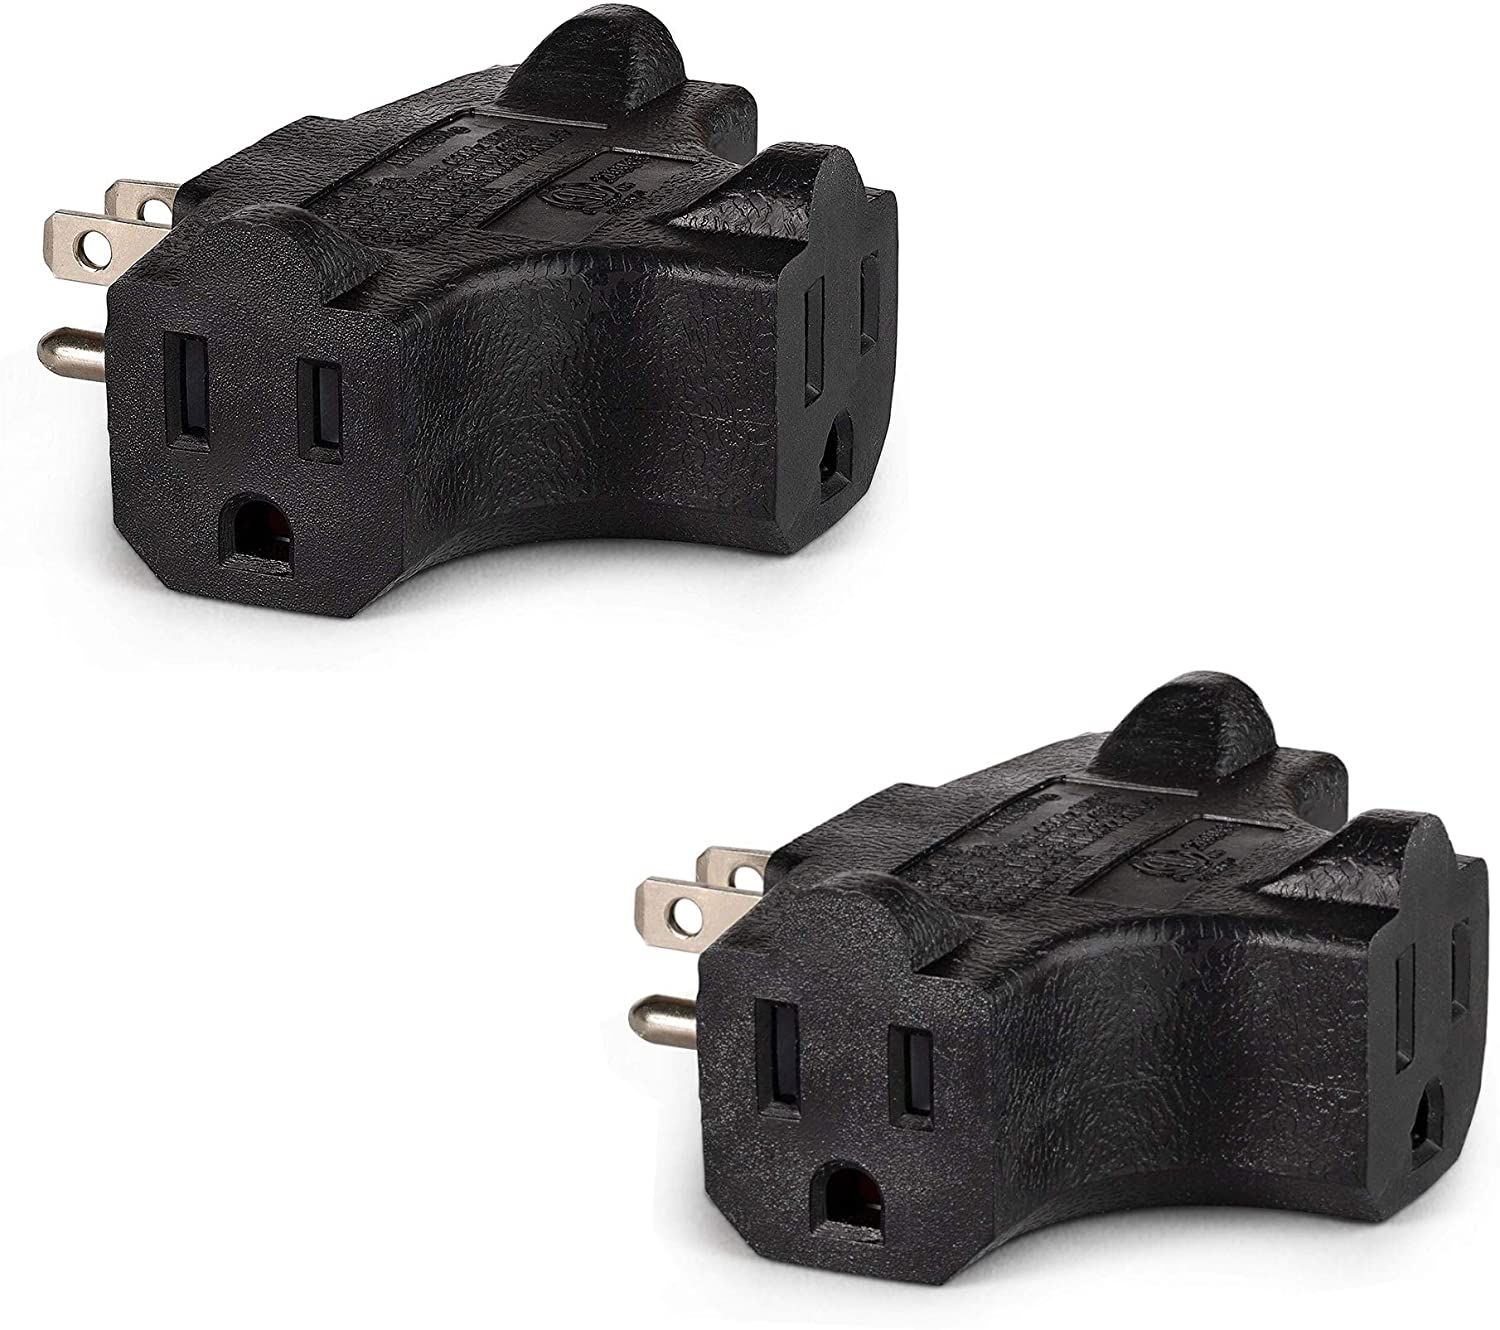 Maxlin Cable 3-Outlet Wall Adapter (T-shaped), Plug Extender; Heavy Duty Grounded Power Tap [ETL Listed] Black - 2 Pack